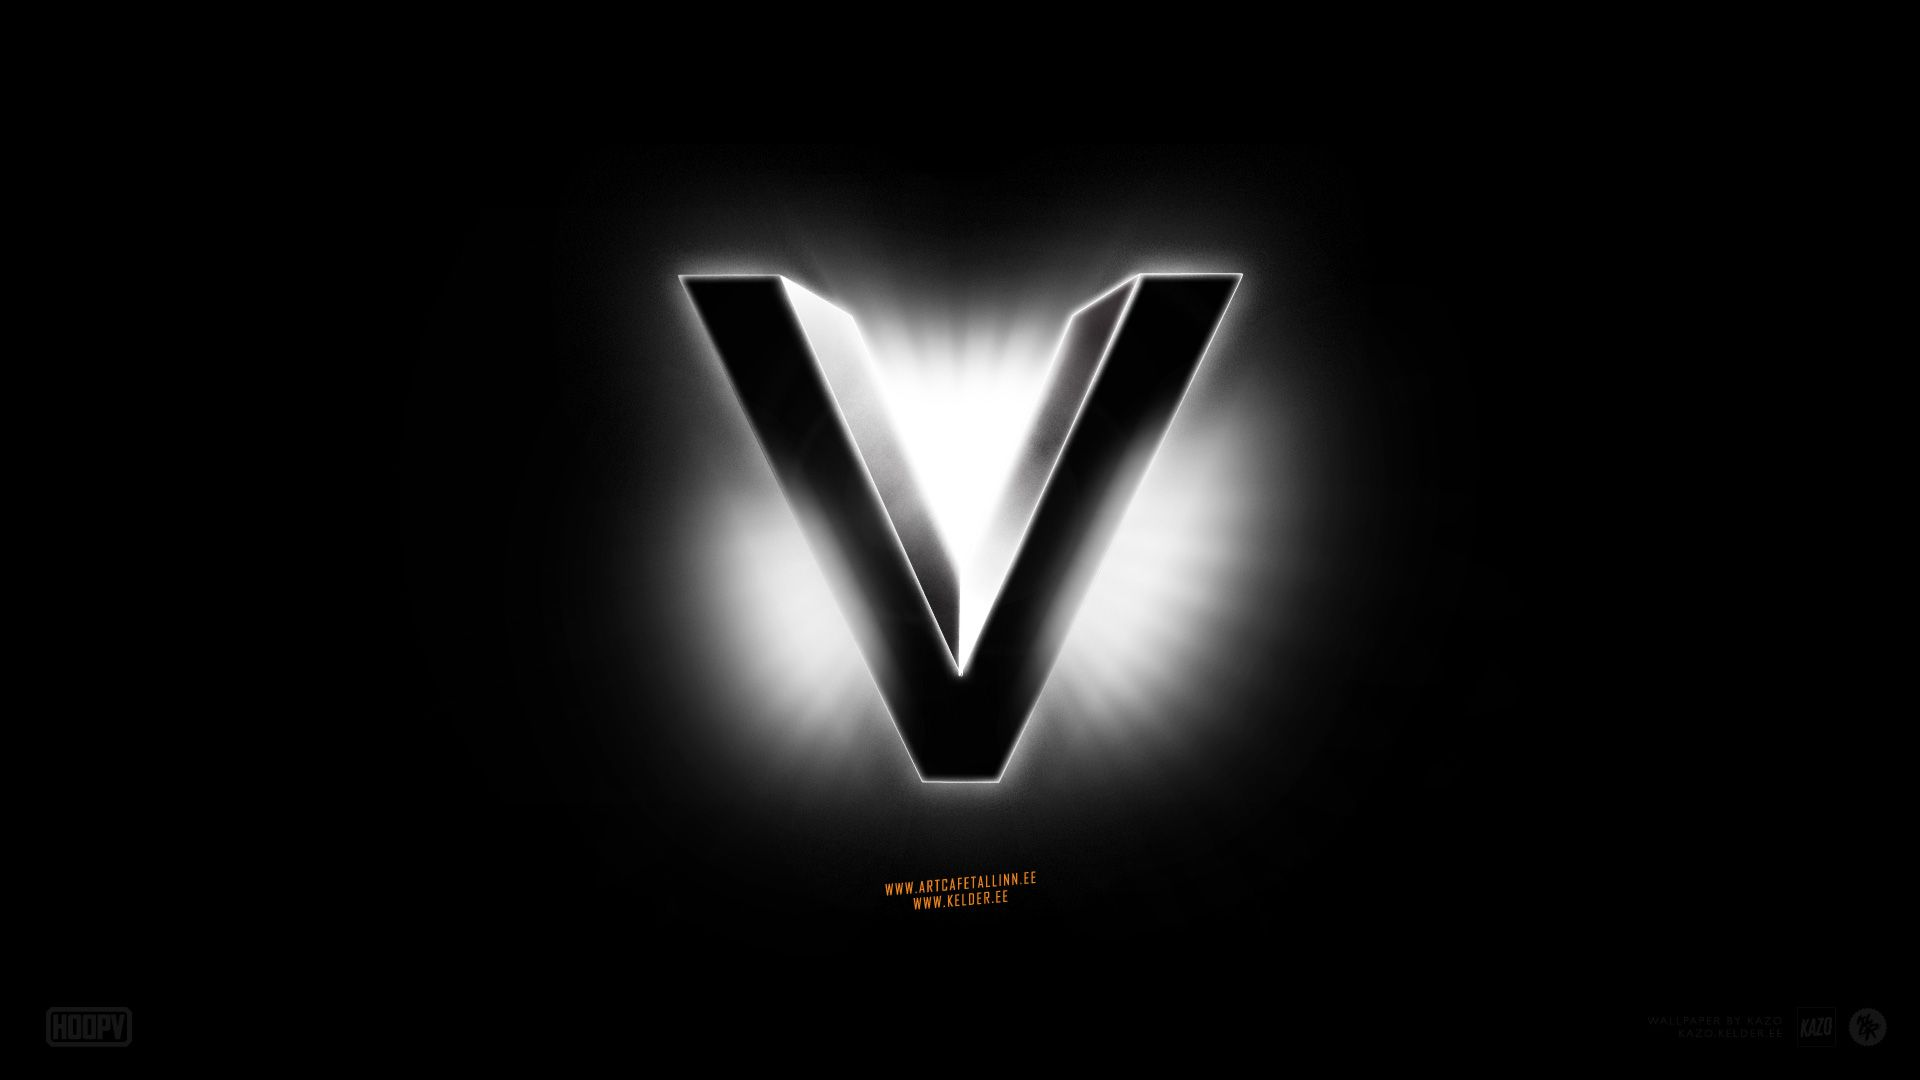 You can download V Alphabet Hd Wallpapers here. V Alphabet Hd Wallpapers In High Resolution ...